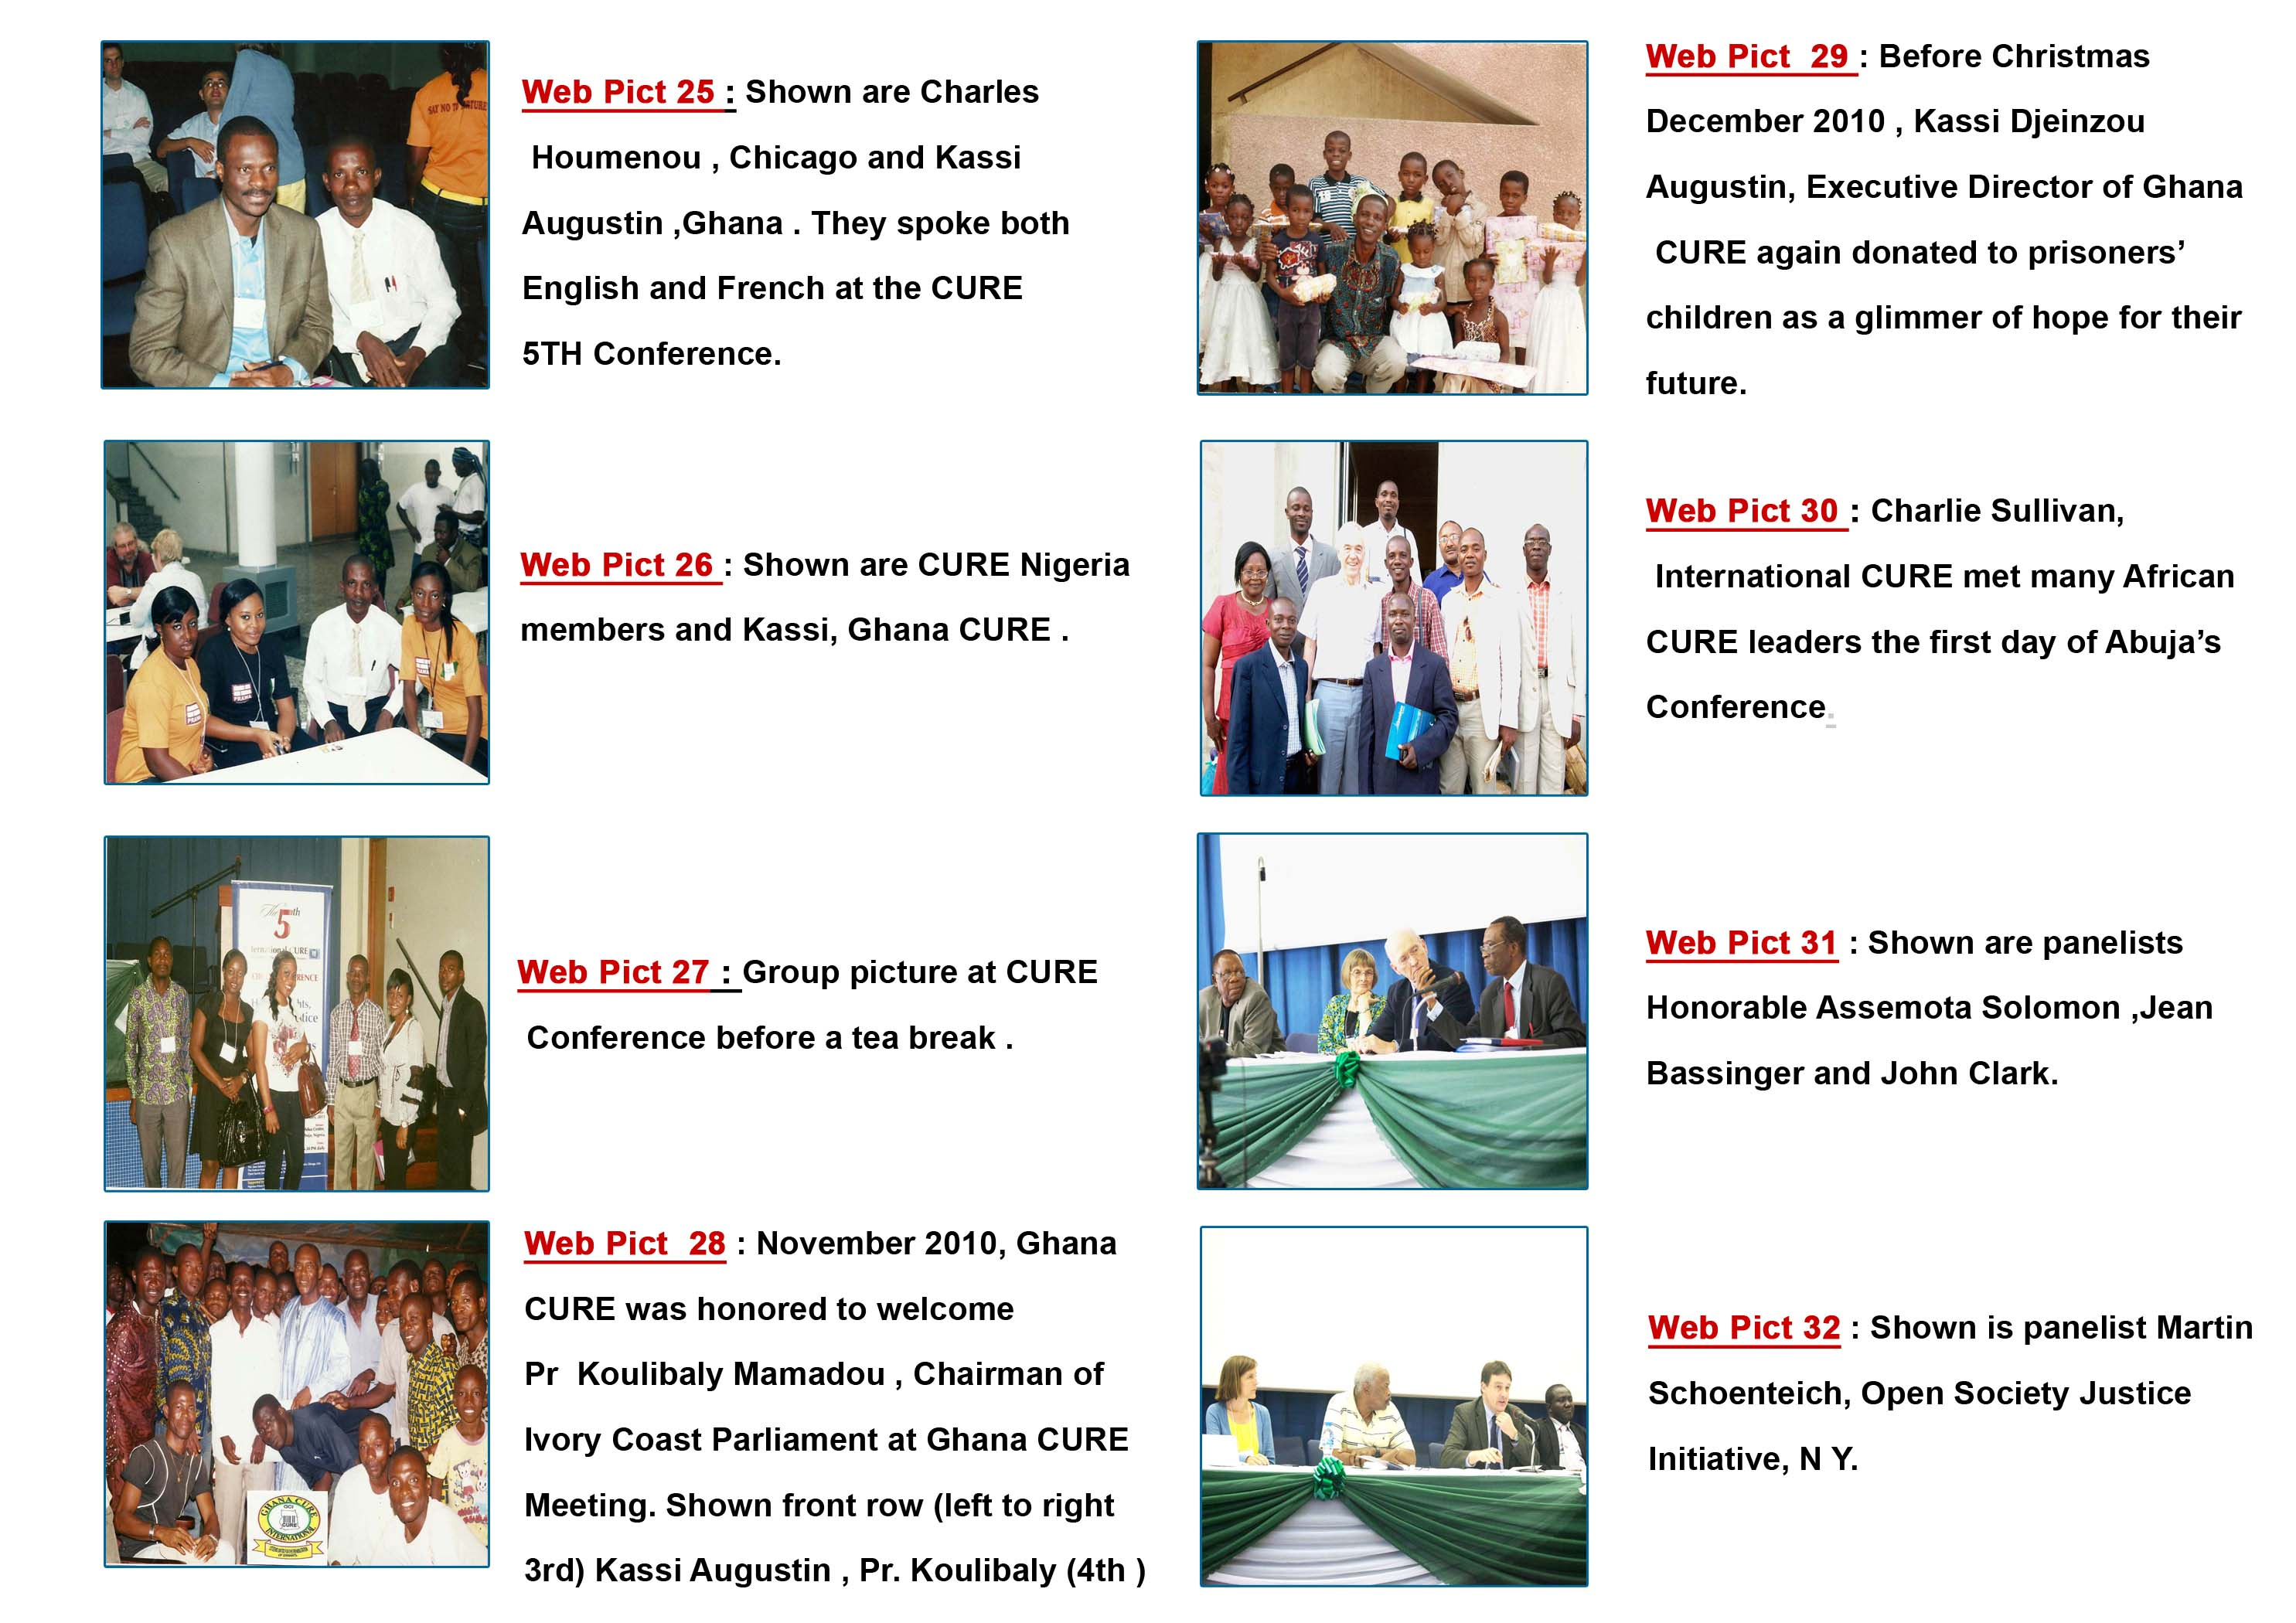 Ghana CURE images - 4